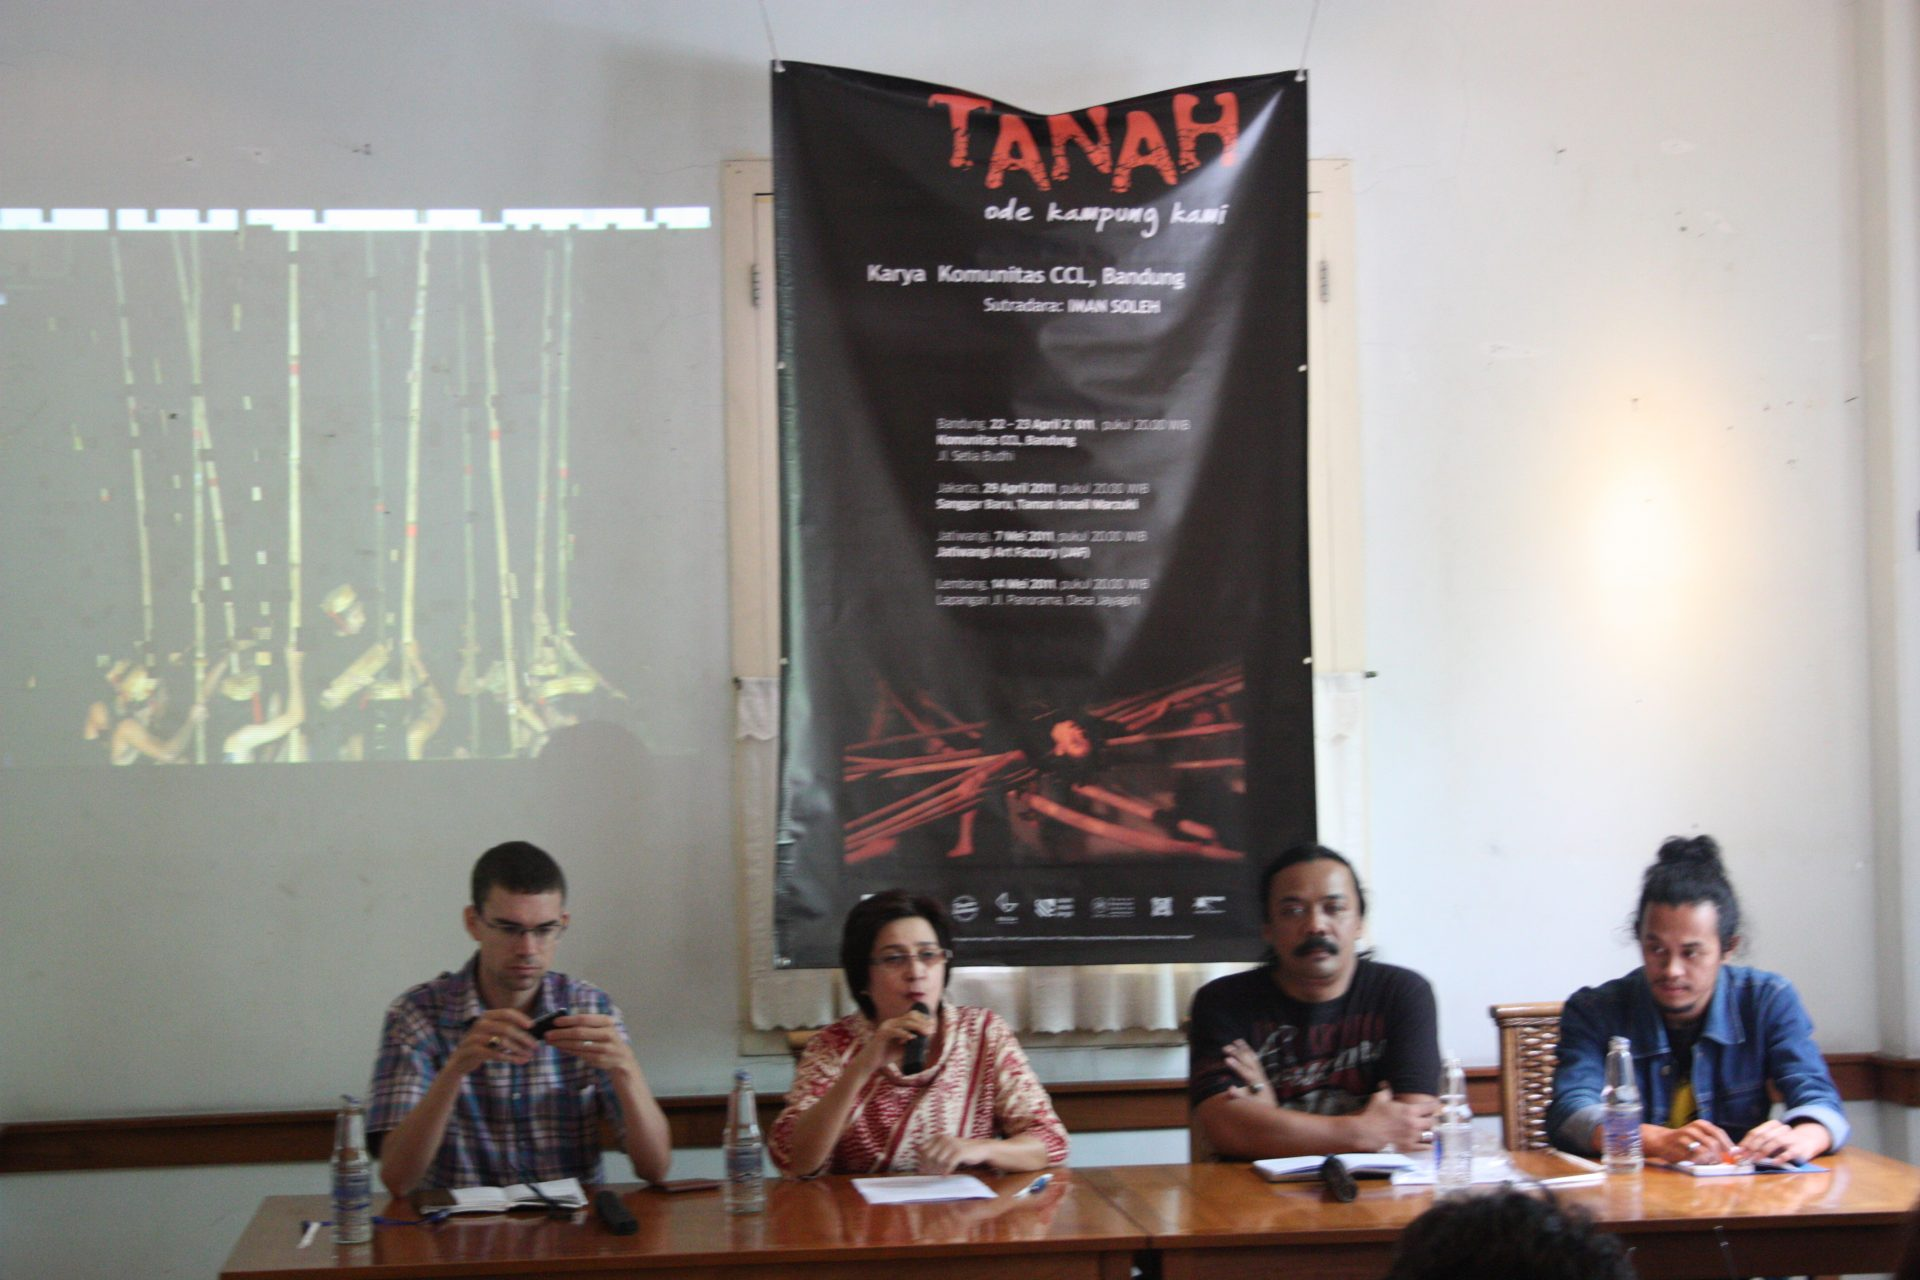 2011_indonesia_tanah_15